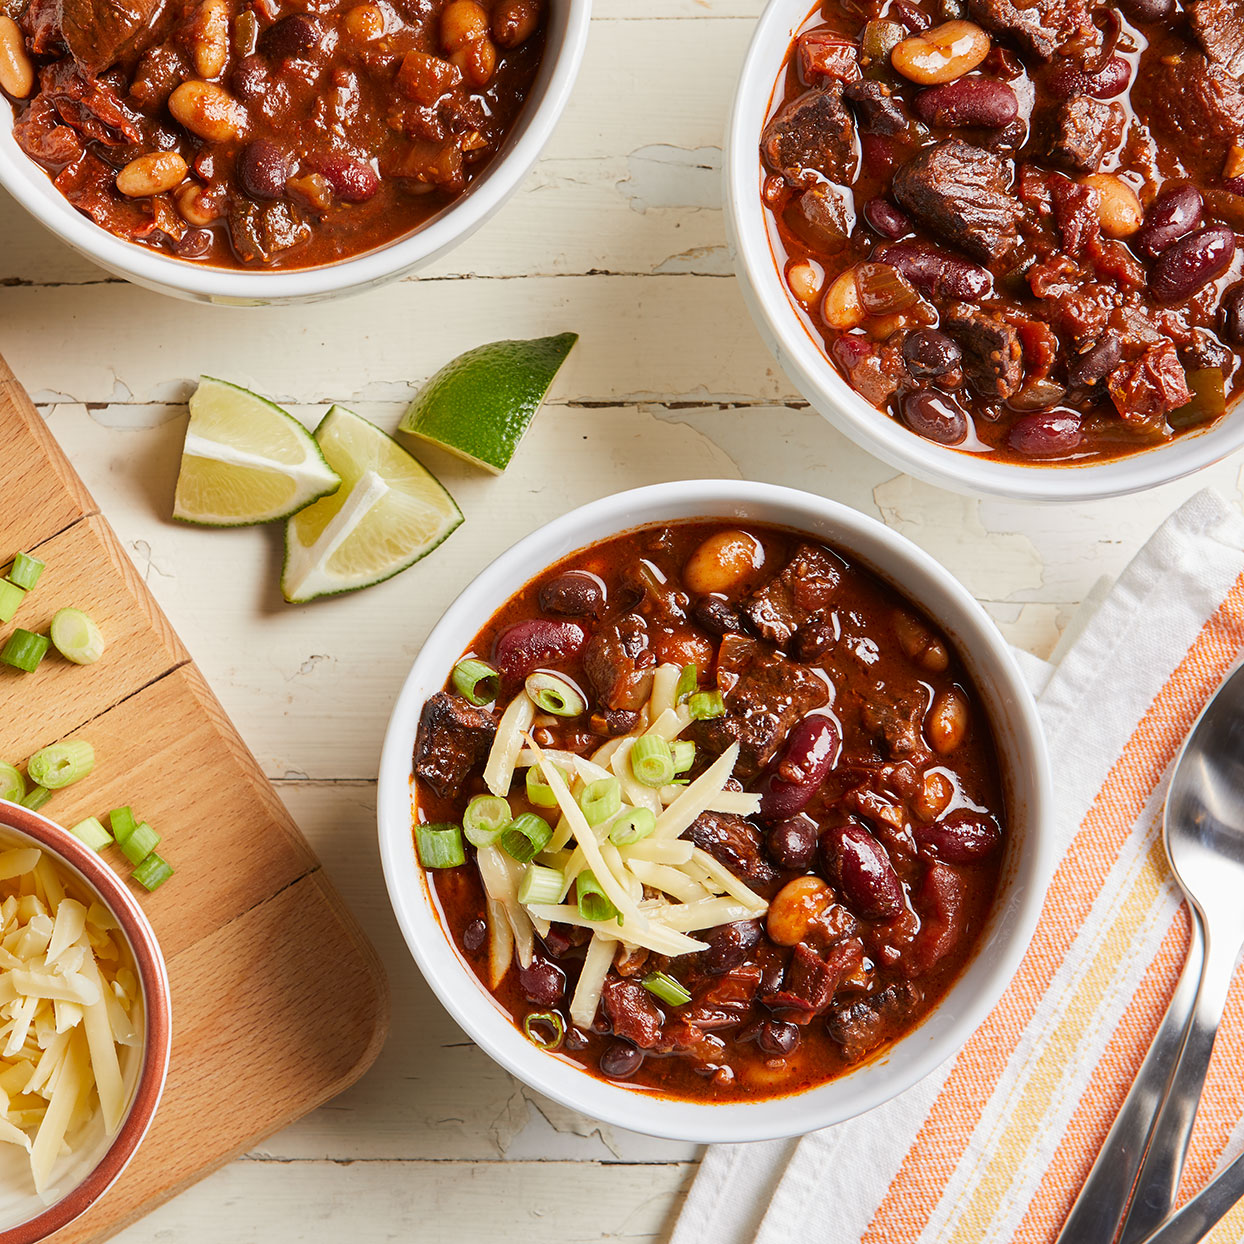 https://www.eatingwell.com/recipe/247924/three-bean-chili/attachment/7836841/